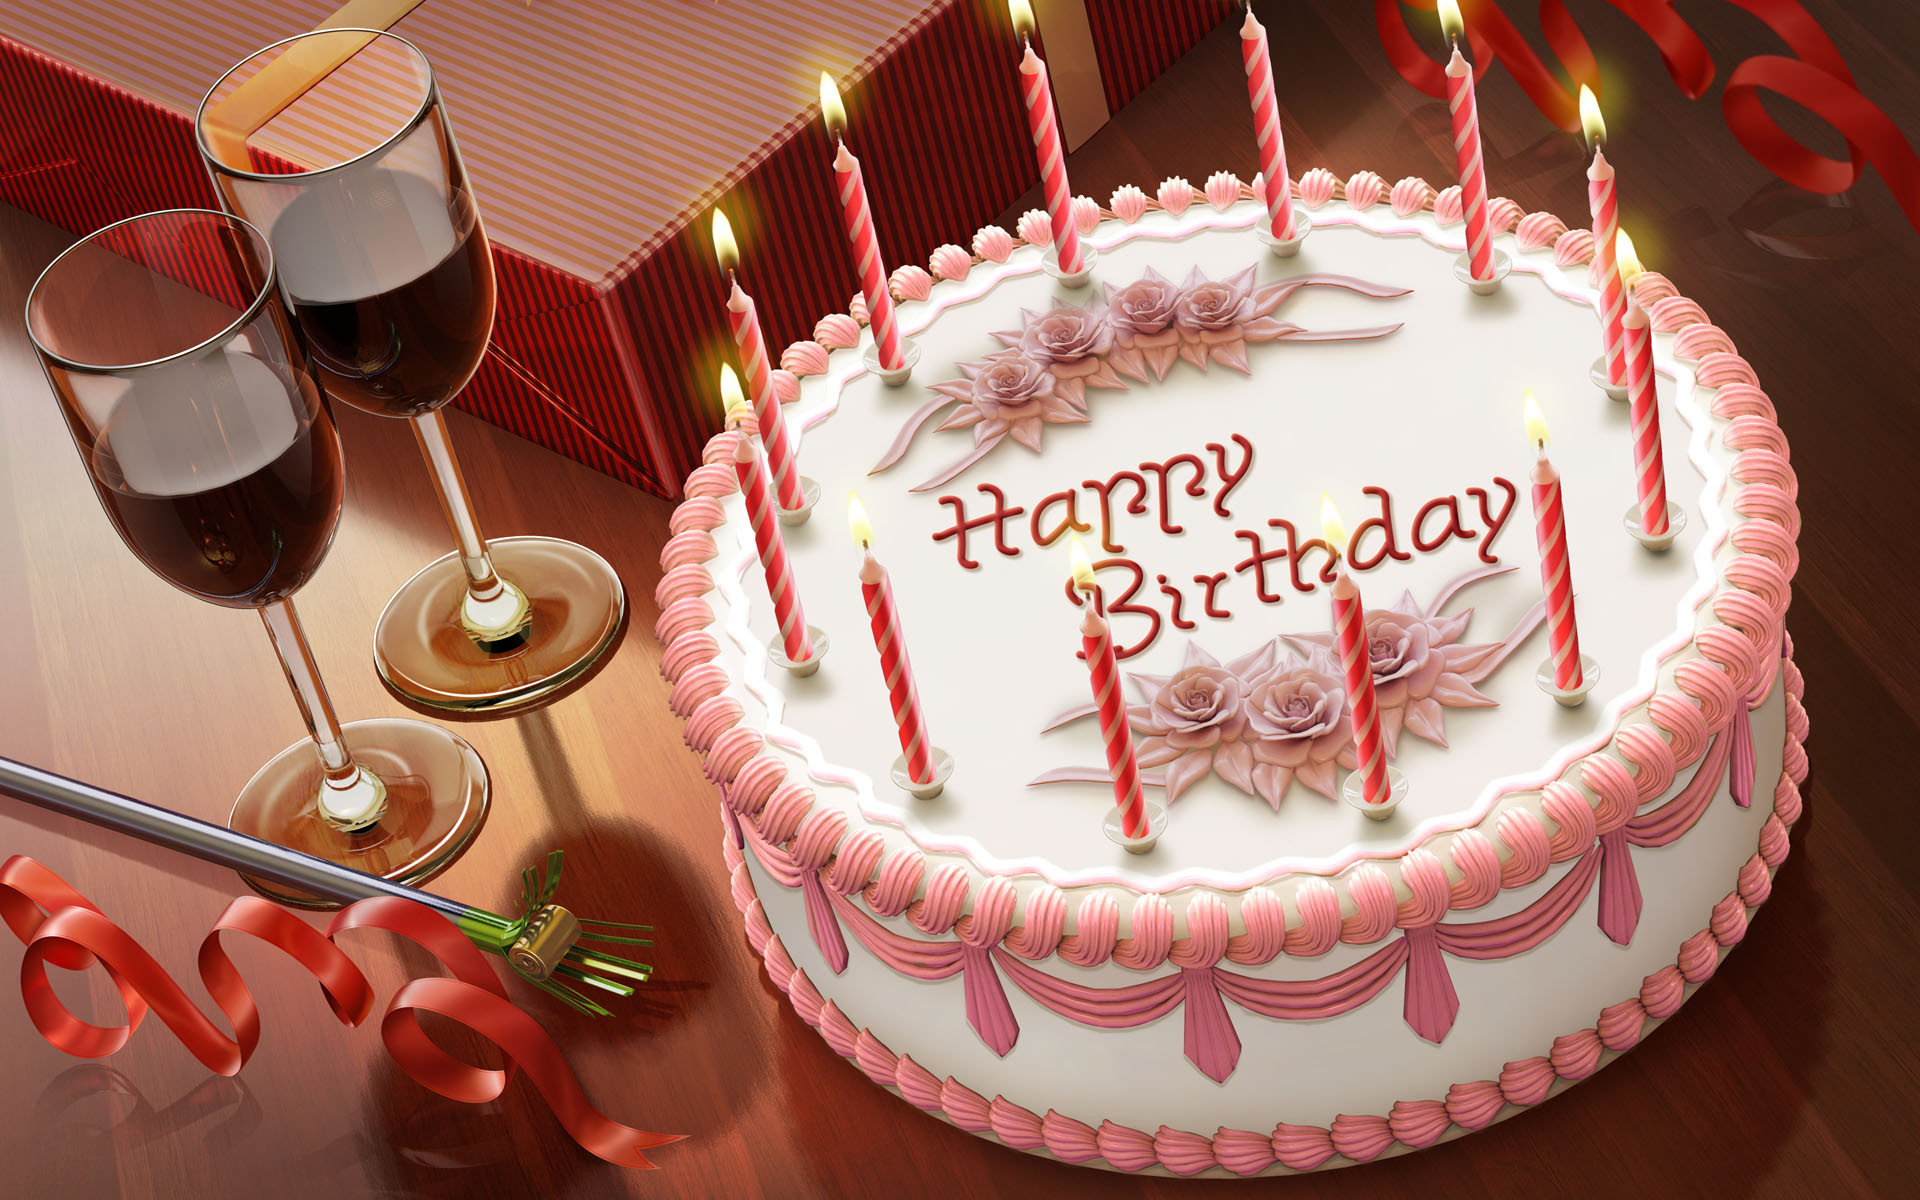 Happy Birthday Cake Images  HD Wallpapers